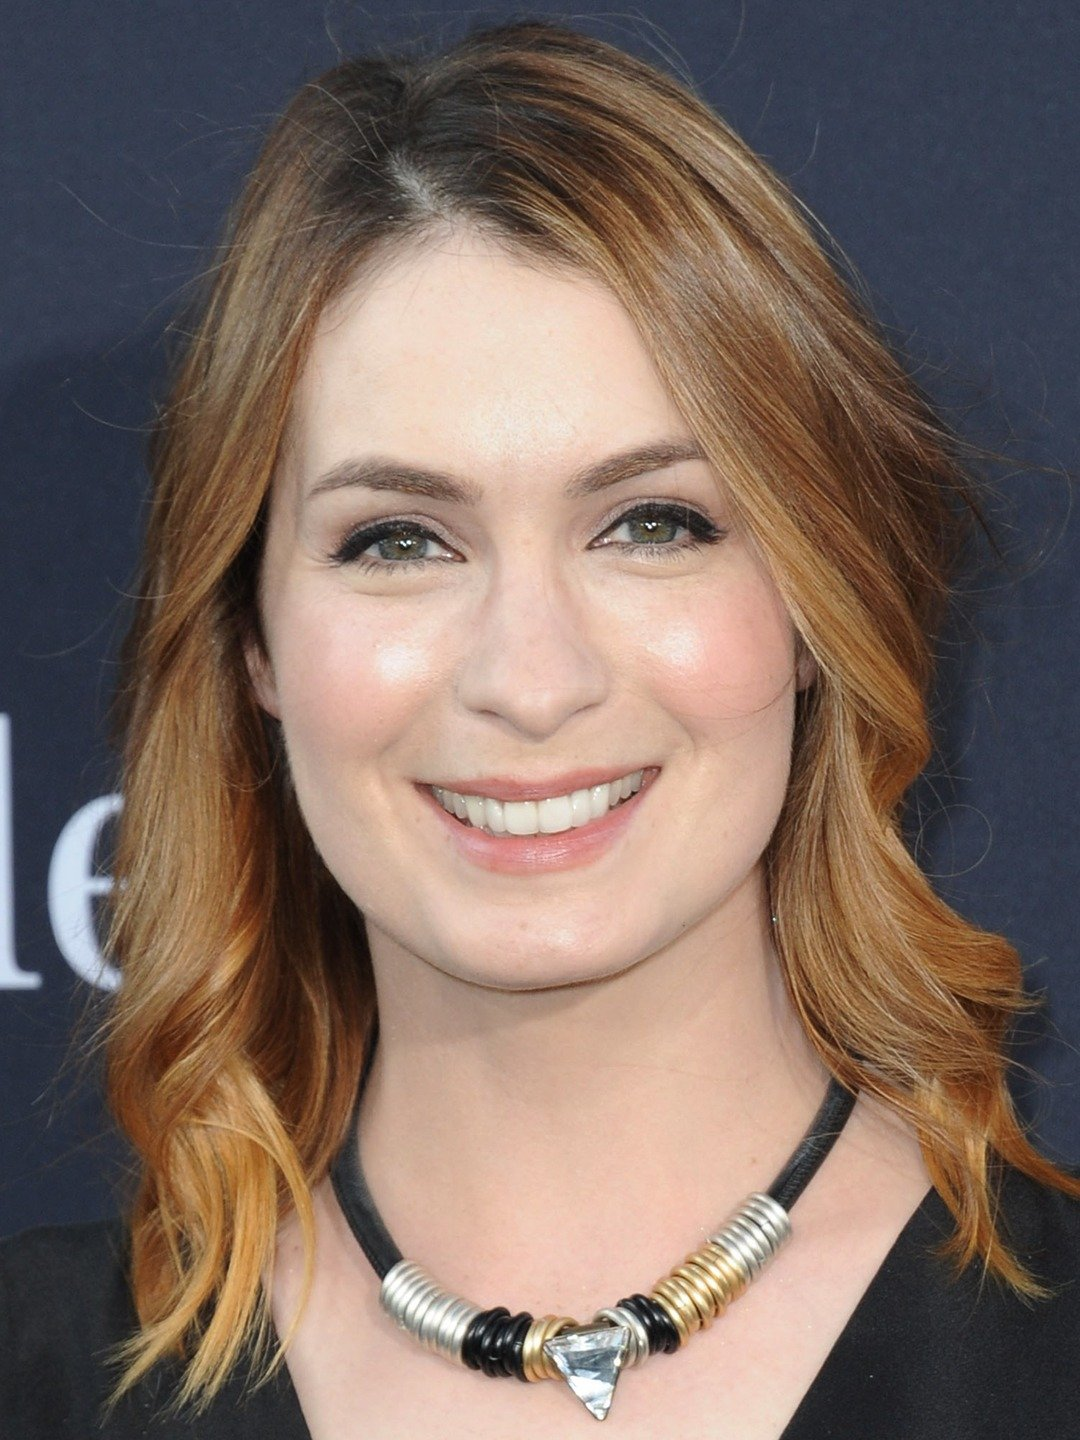 Image result for FELICIA DAY